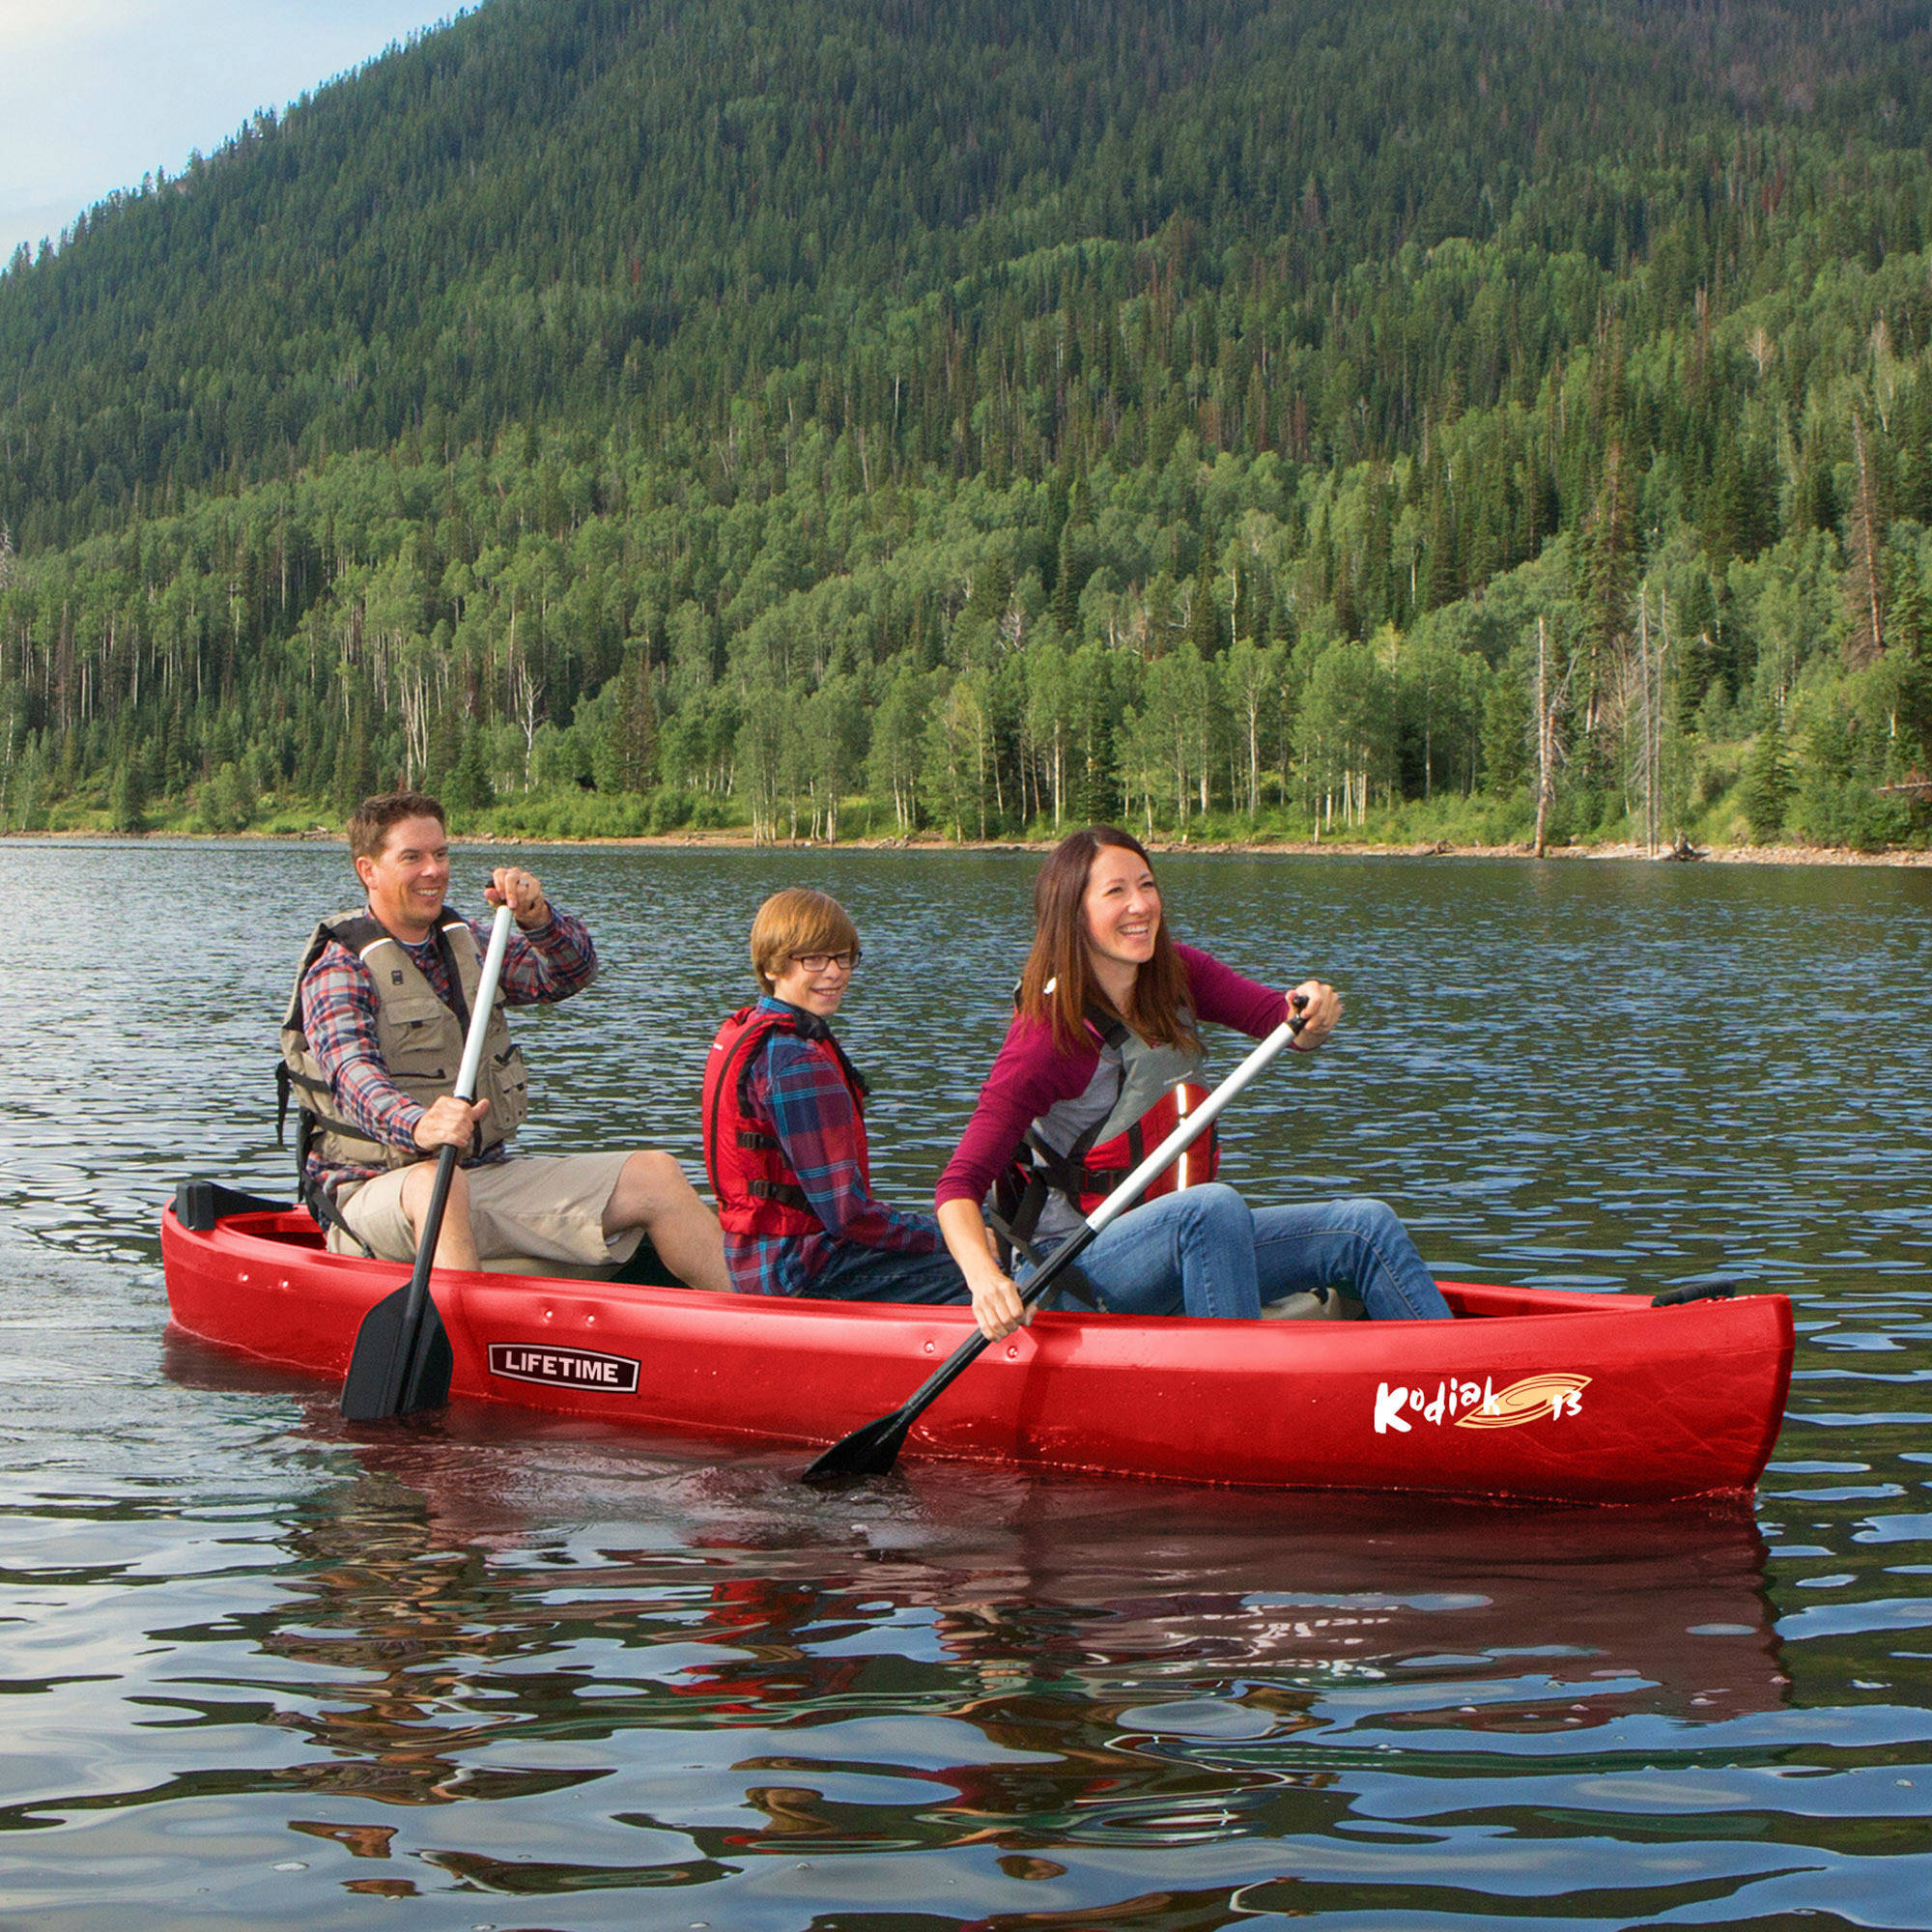 Lifetime 13' Kodiak Canoe, Red with 2 Bonus Canoe Paddles